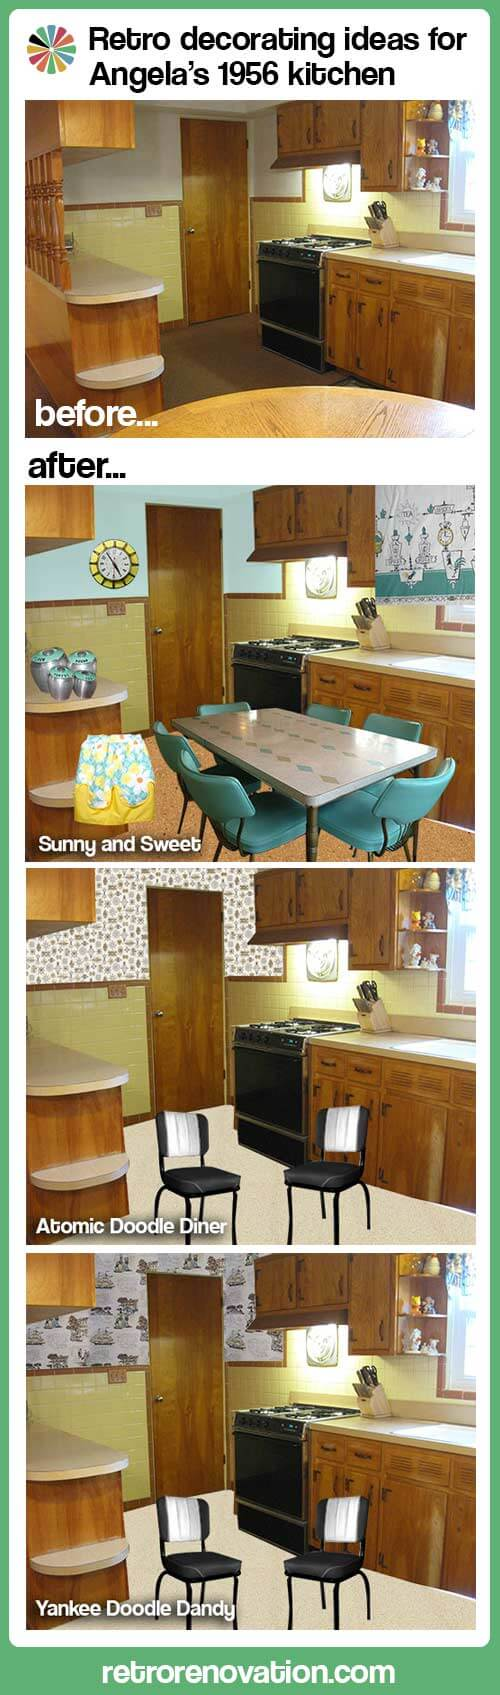 retro decorating ideas 1950s kitchen